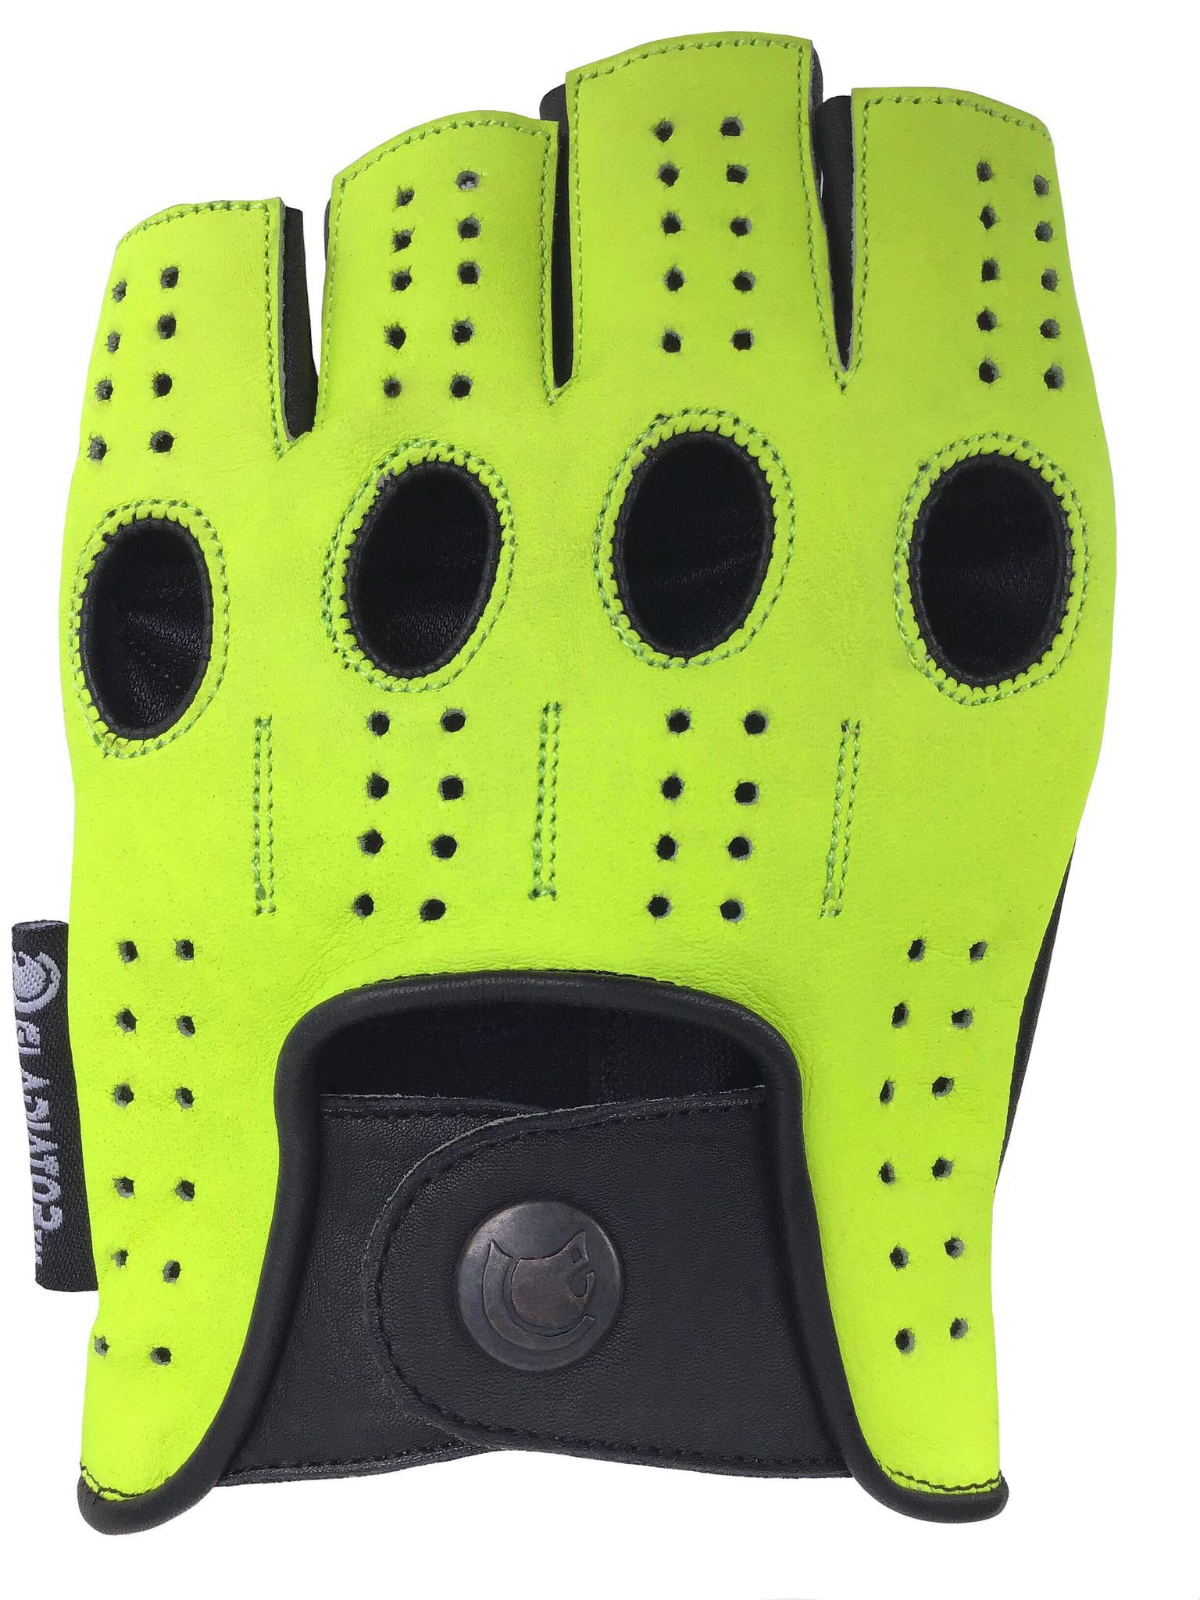 MEN'S GREEN LEATHER FINGERLESS DRIVING MOTORCYCLE BIKER GLOVES Work Out Exercise